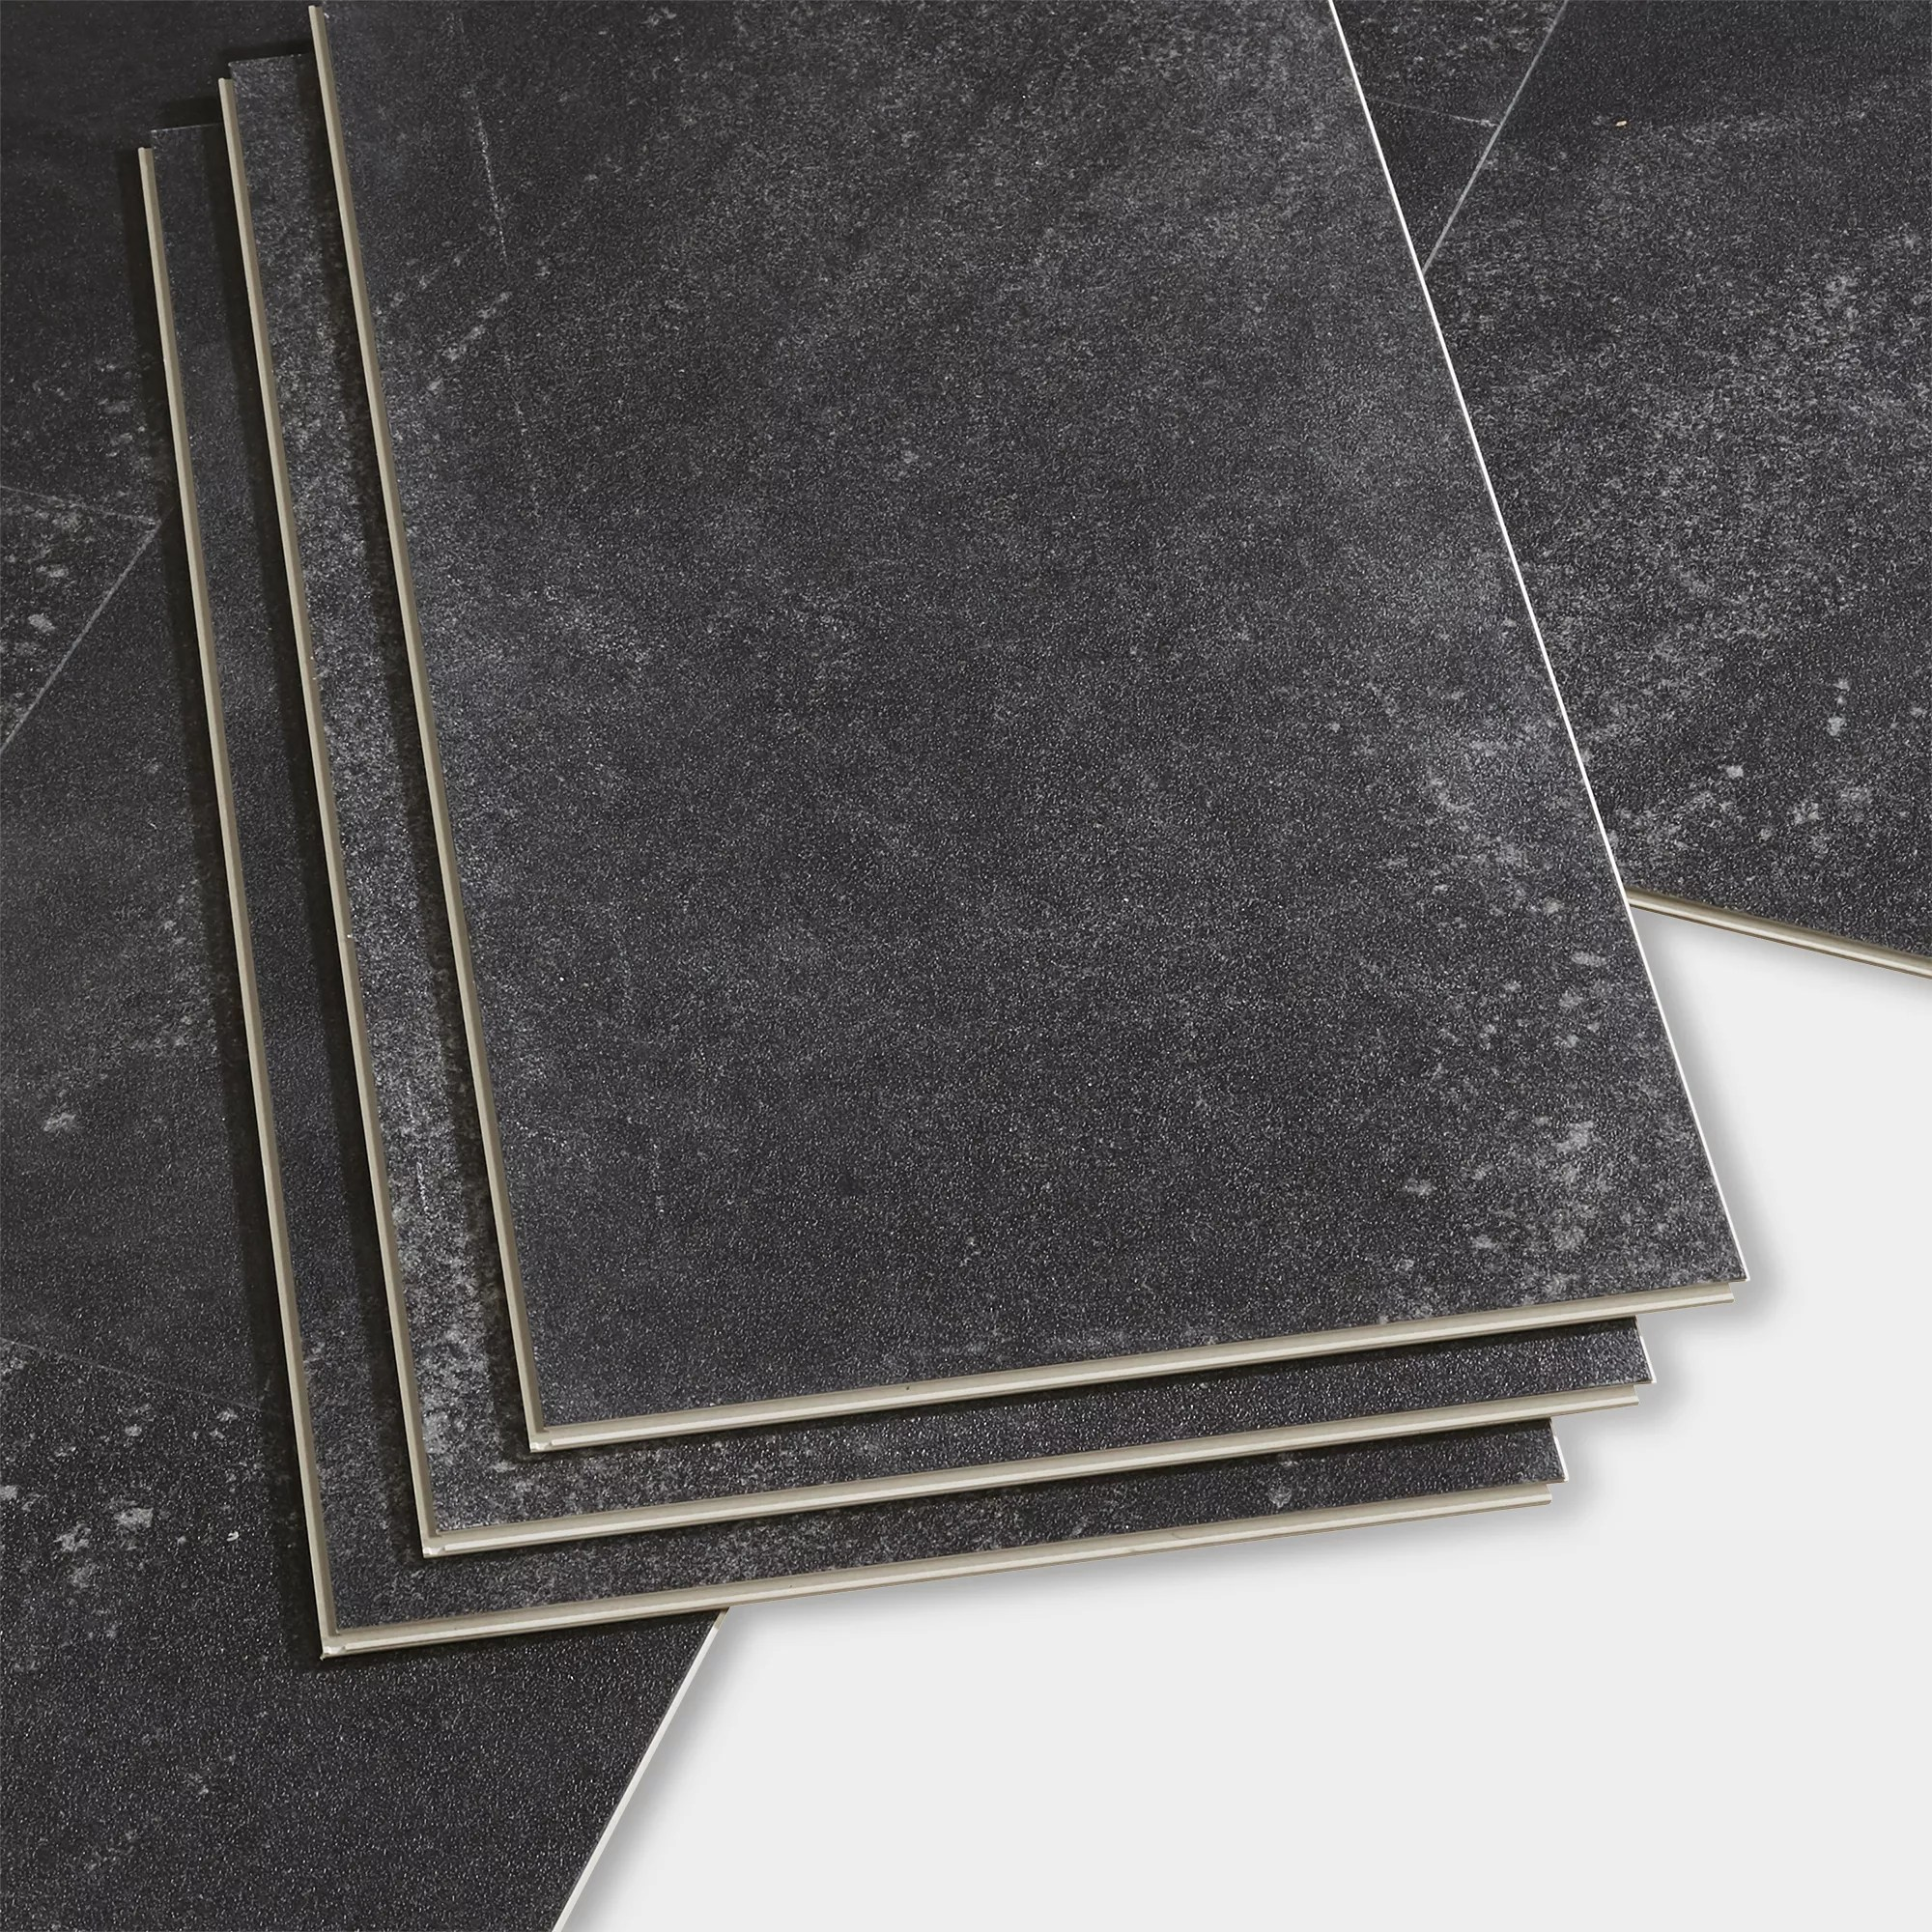 goodhome jazy charcoal tile effect luxury vinyl click flooring 2 23m pack